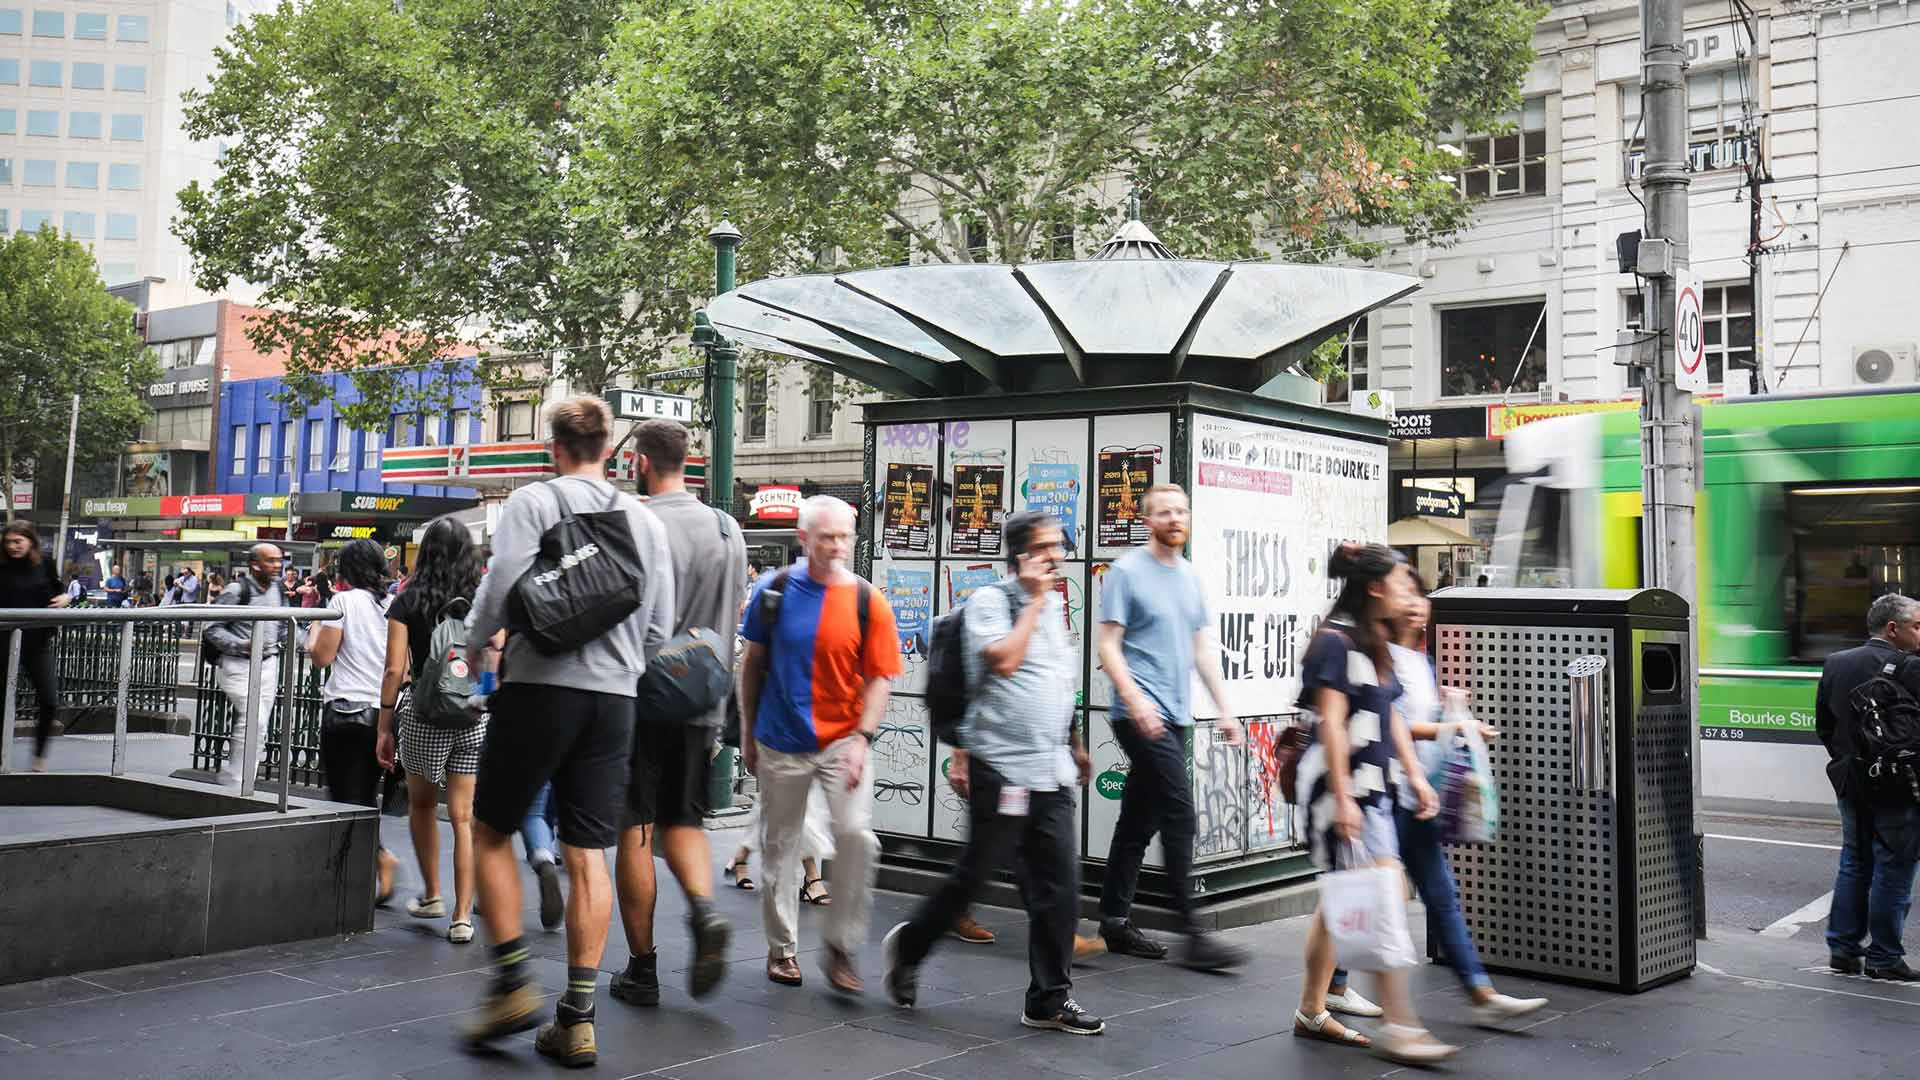 Melbourne's Footpath Kiosks Could Be Gone by the End of the Year